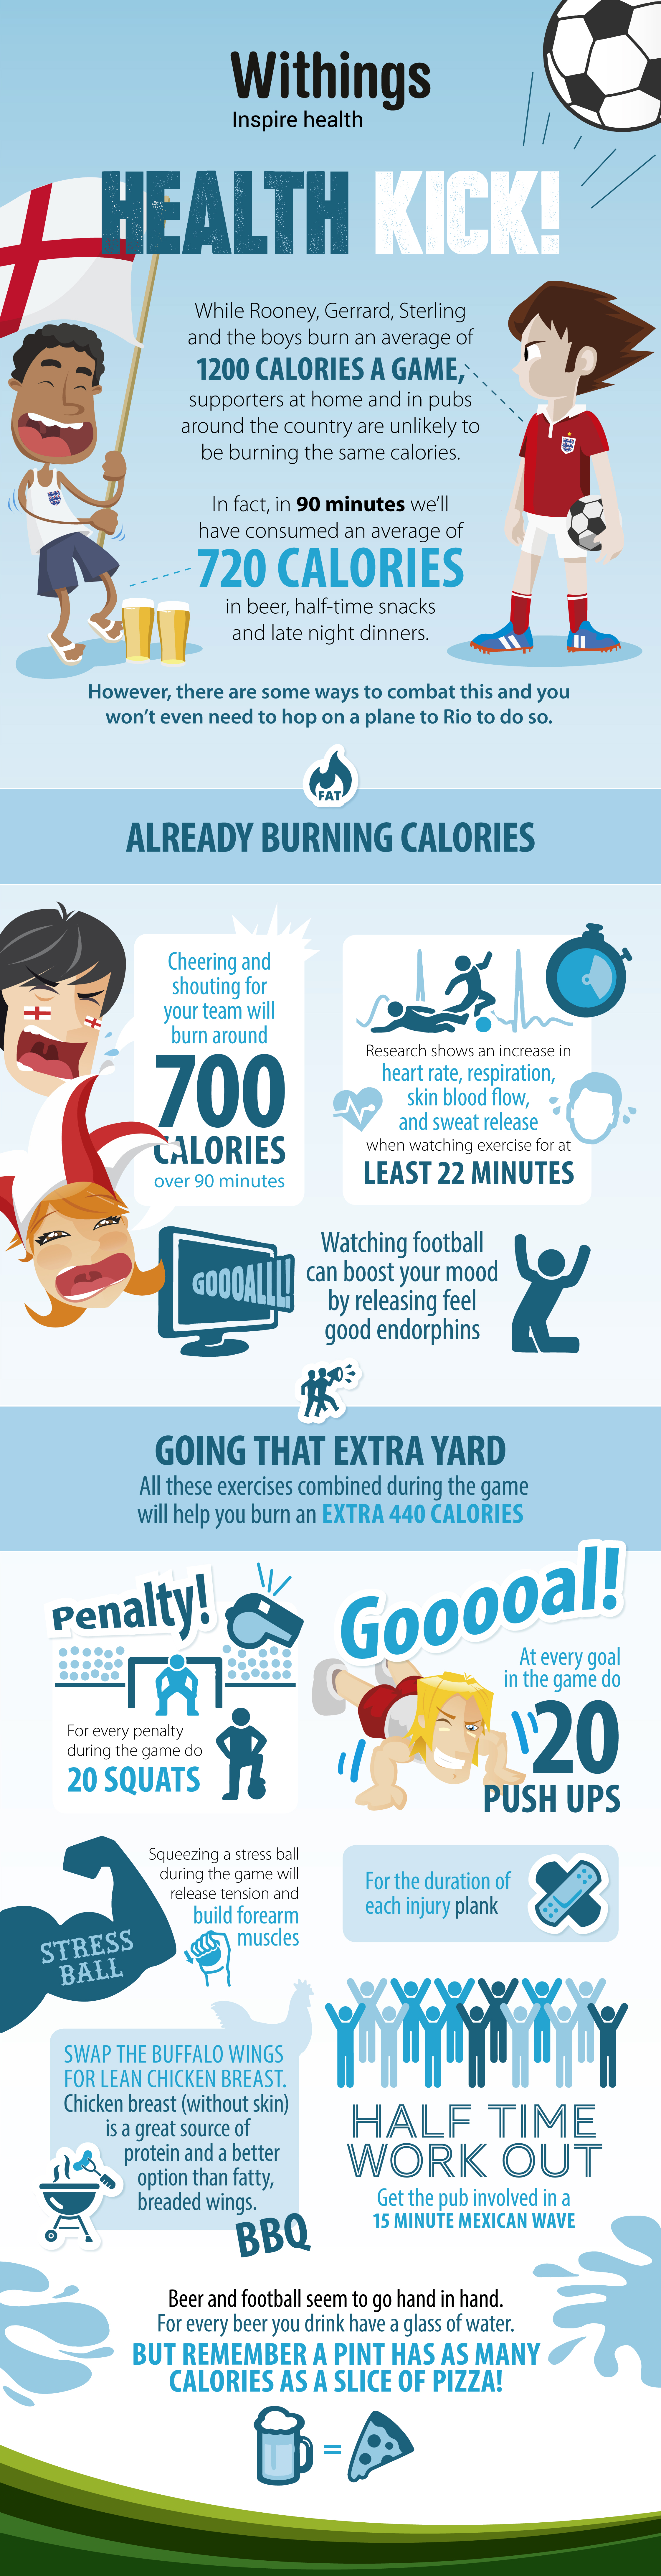 Withings_infographic_final[1][2][2][2]